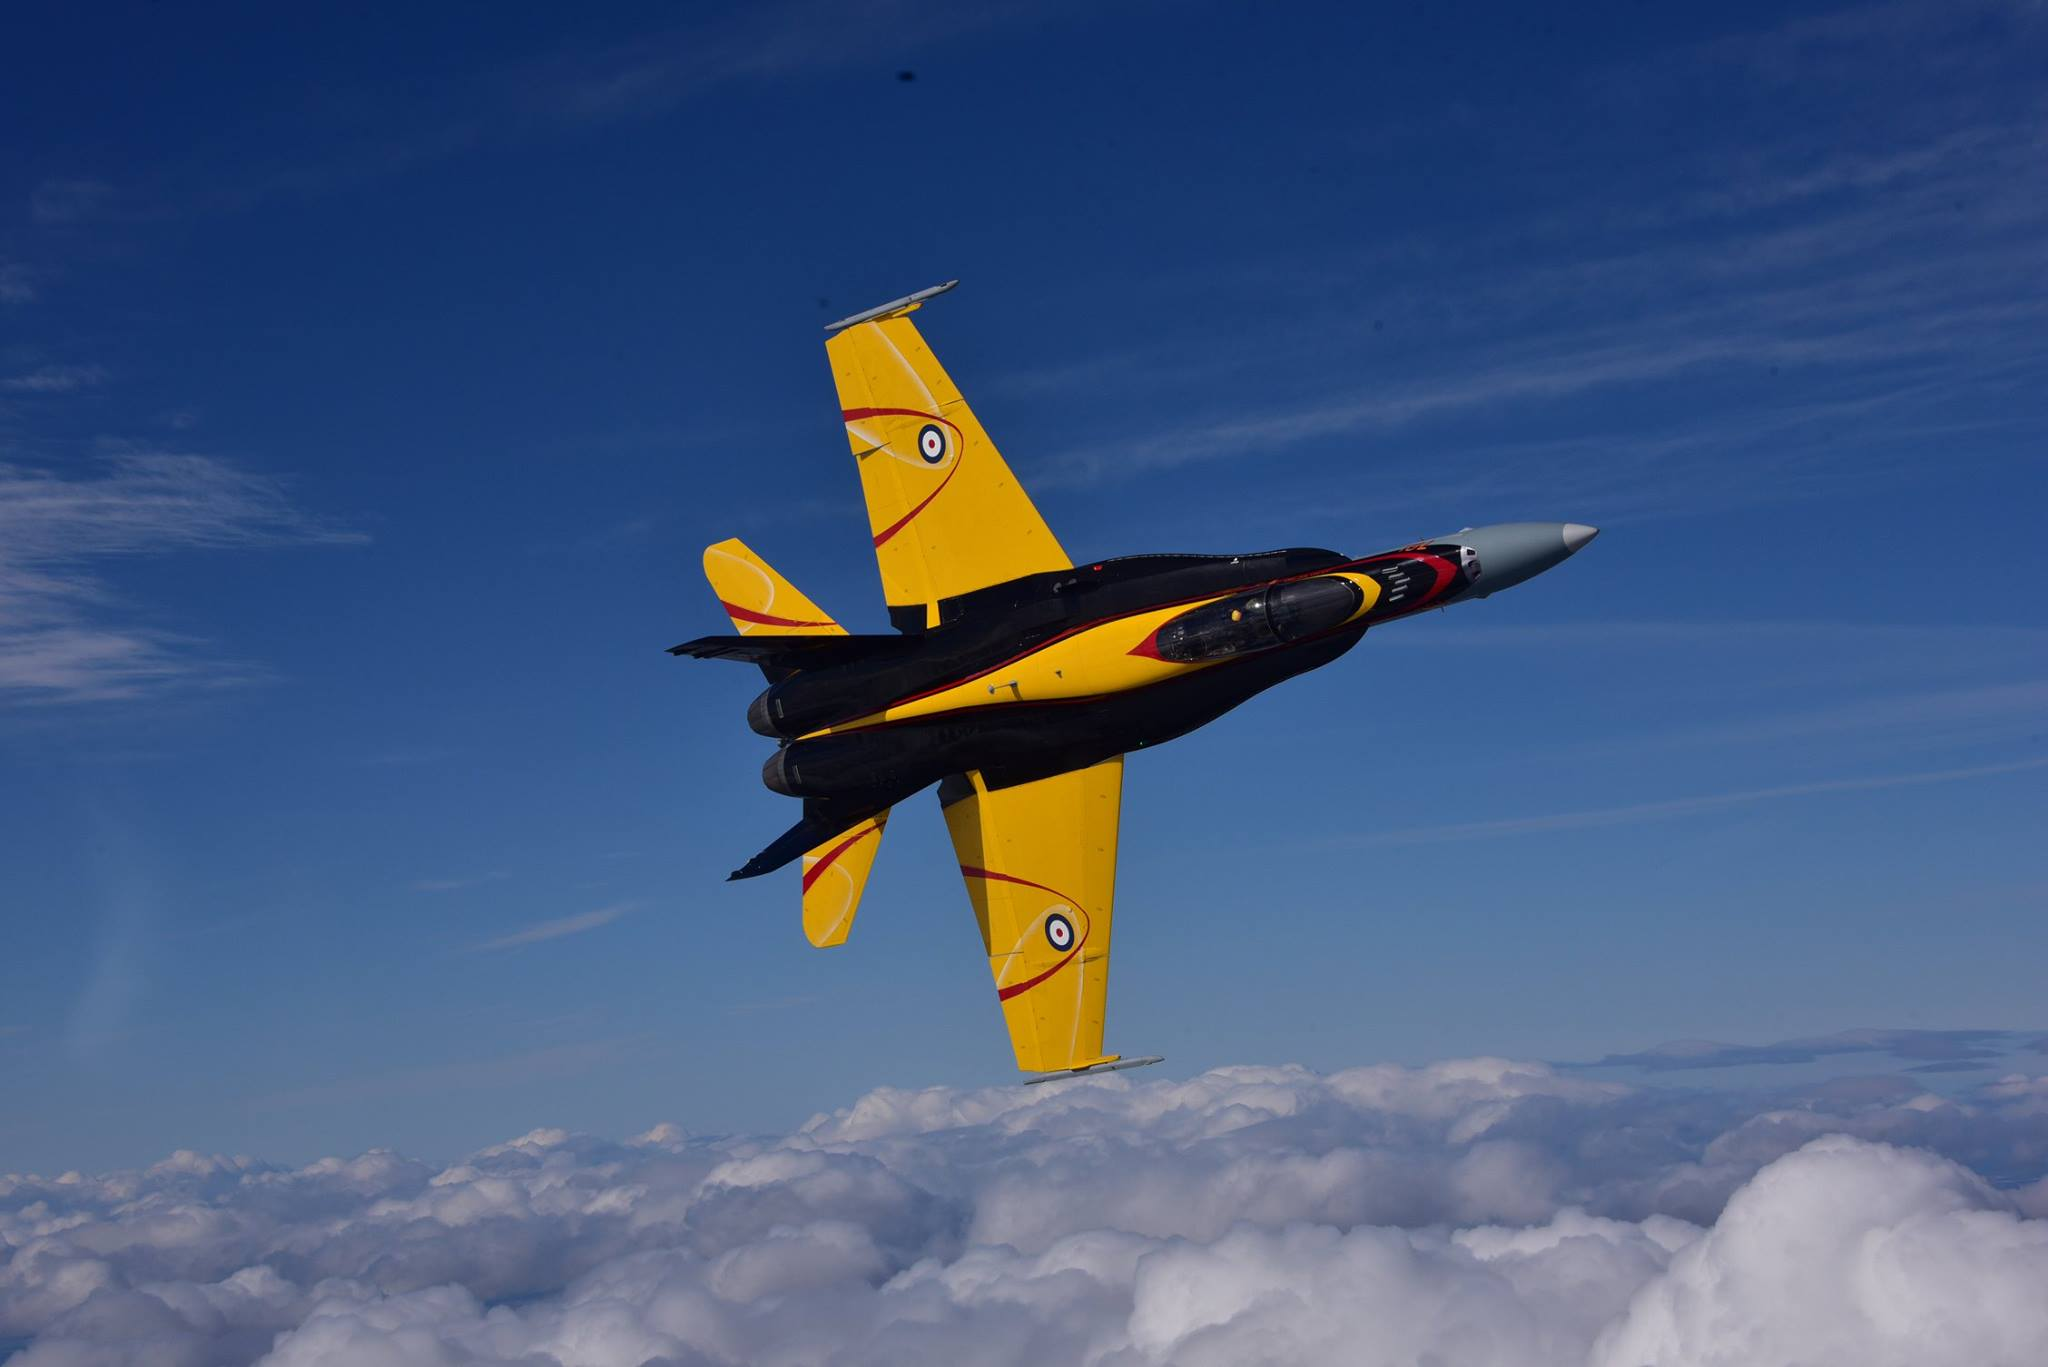 The CF-18 Demonstration jet takes to the sky during its first day of flying! PHOTO: © Mike Reyno